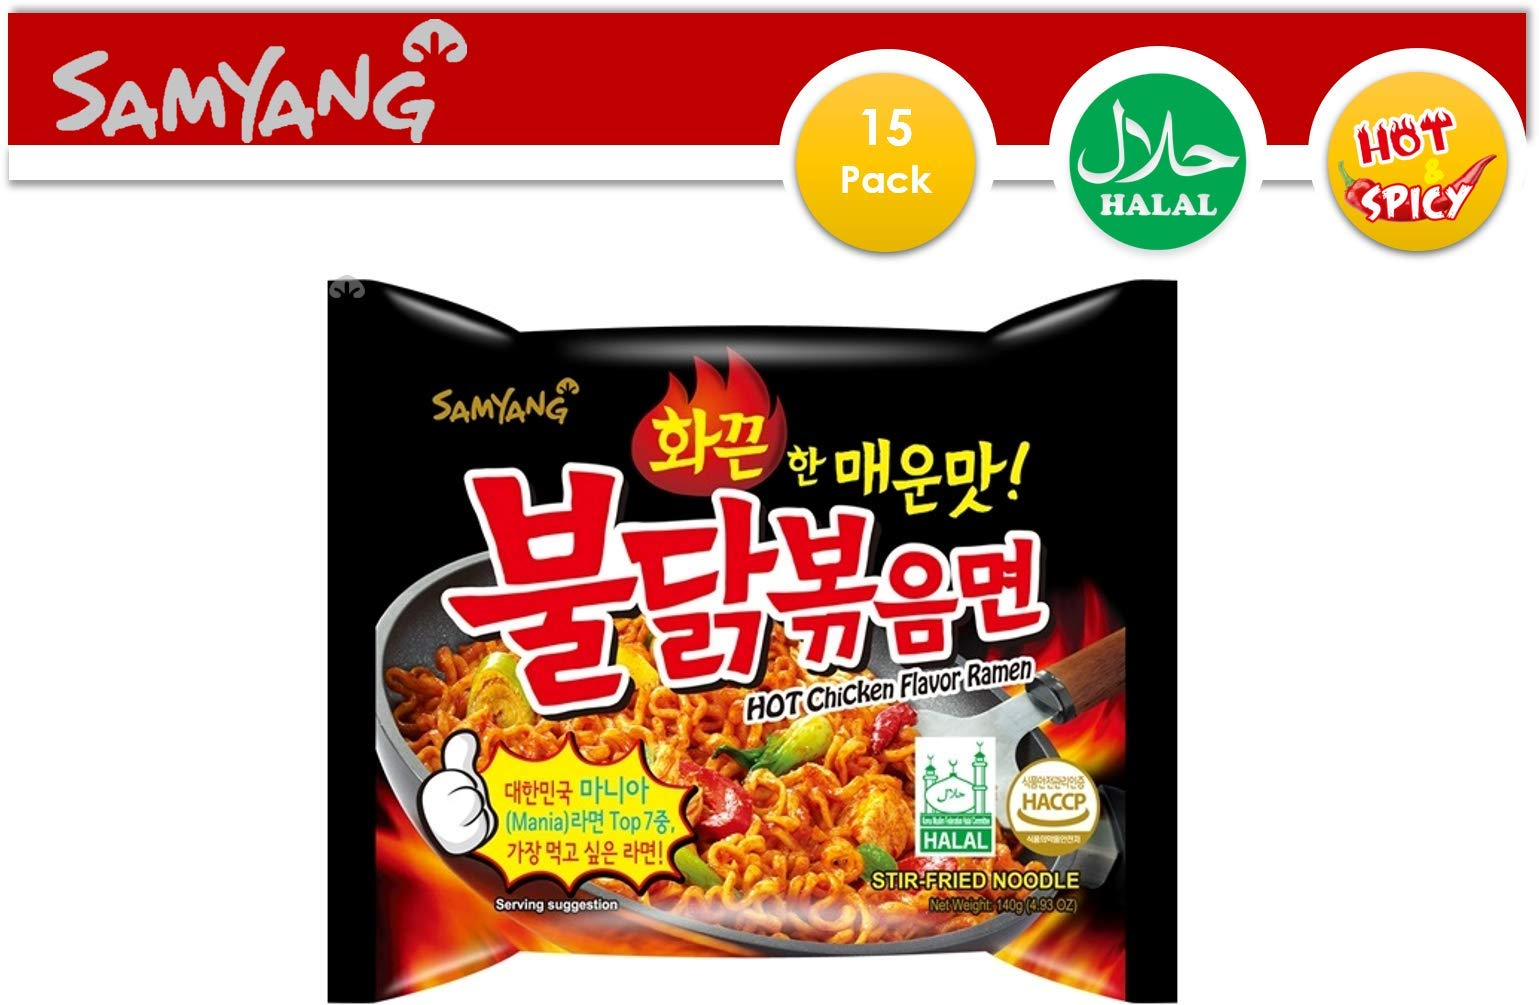 Samyang Instant Ramen Noodles, Halal Certified, Spicy Stir-Fried Chicken Flavor (Pack of 15)